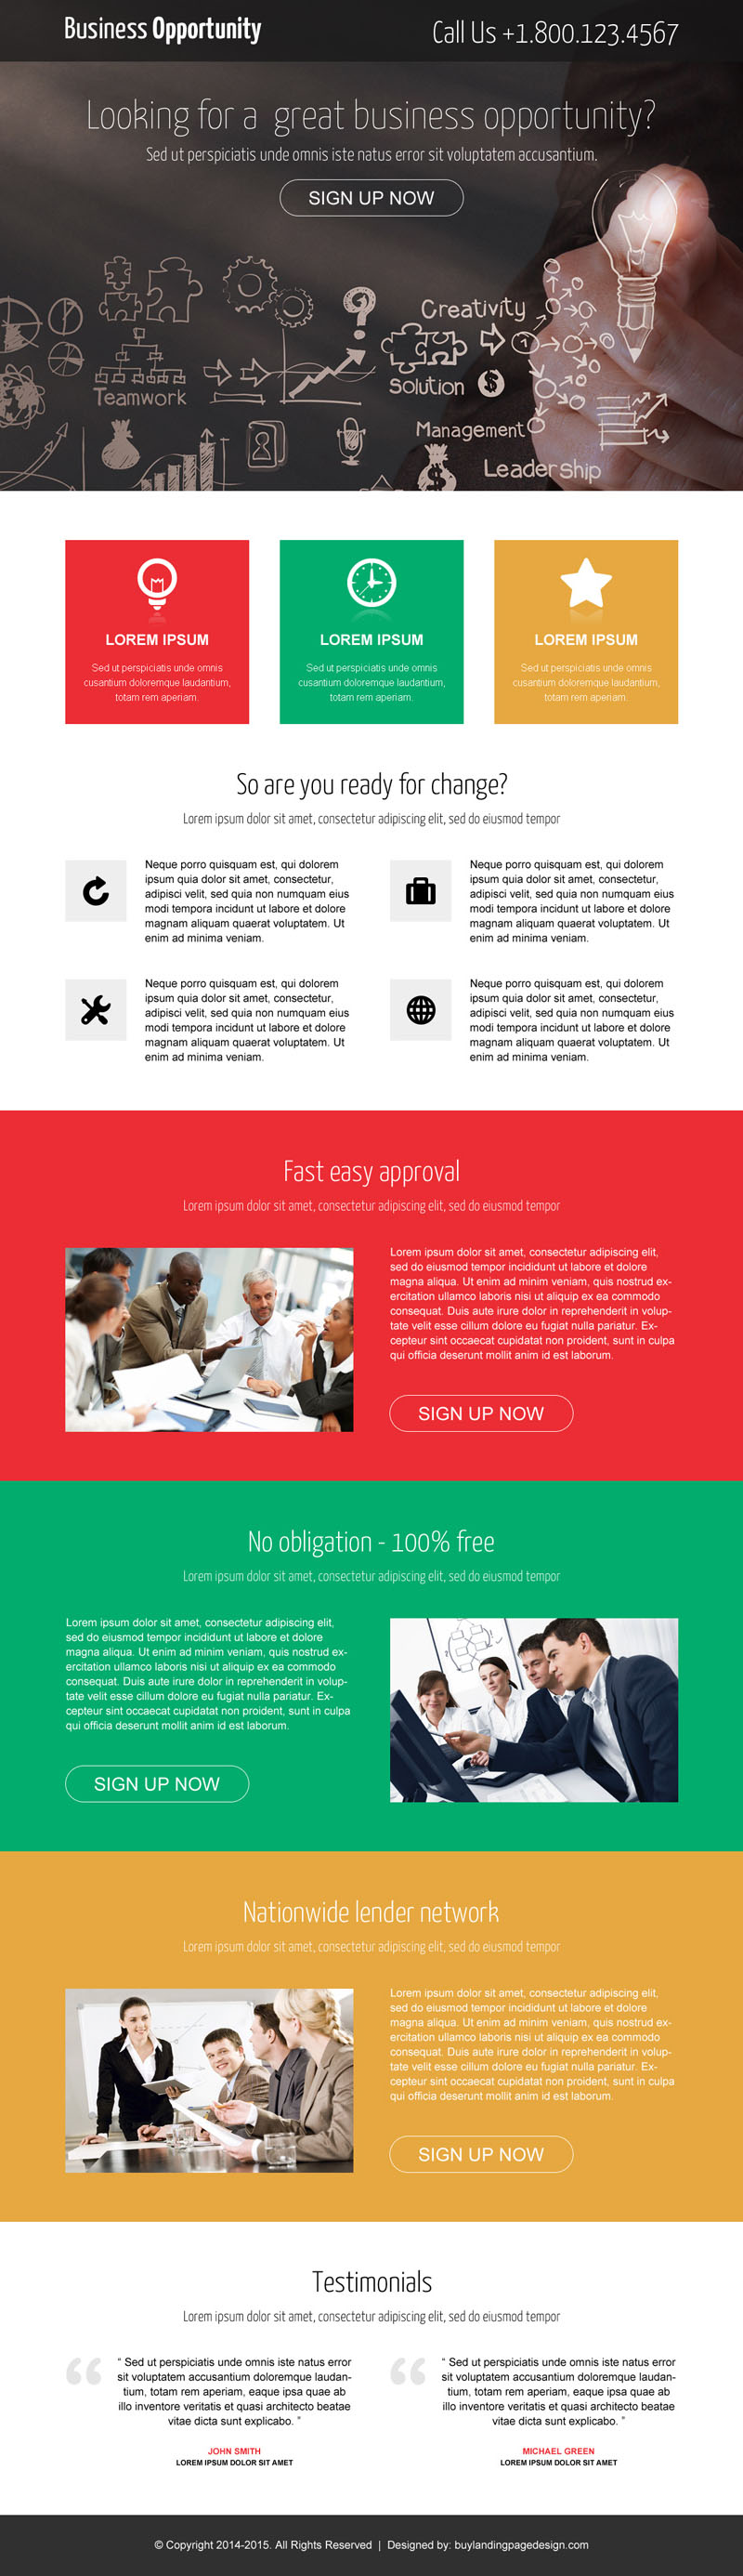 business-sign-up-call-to-action-landing-page-design-template-008